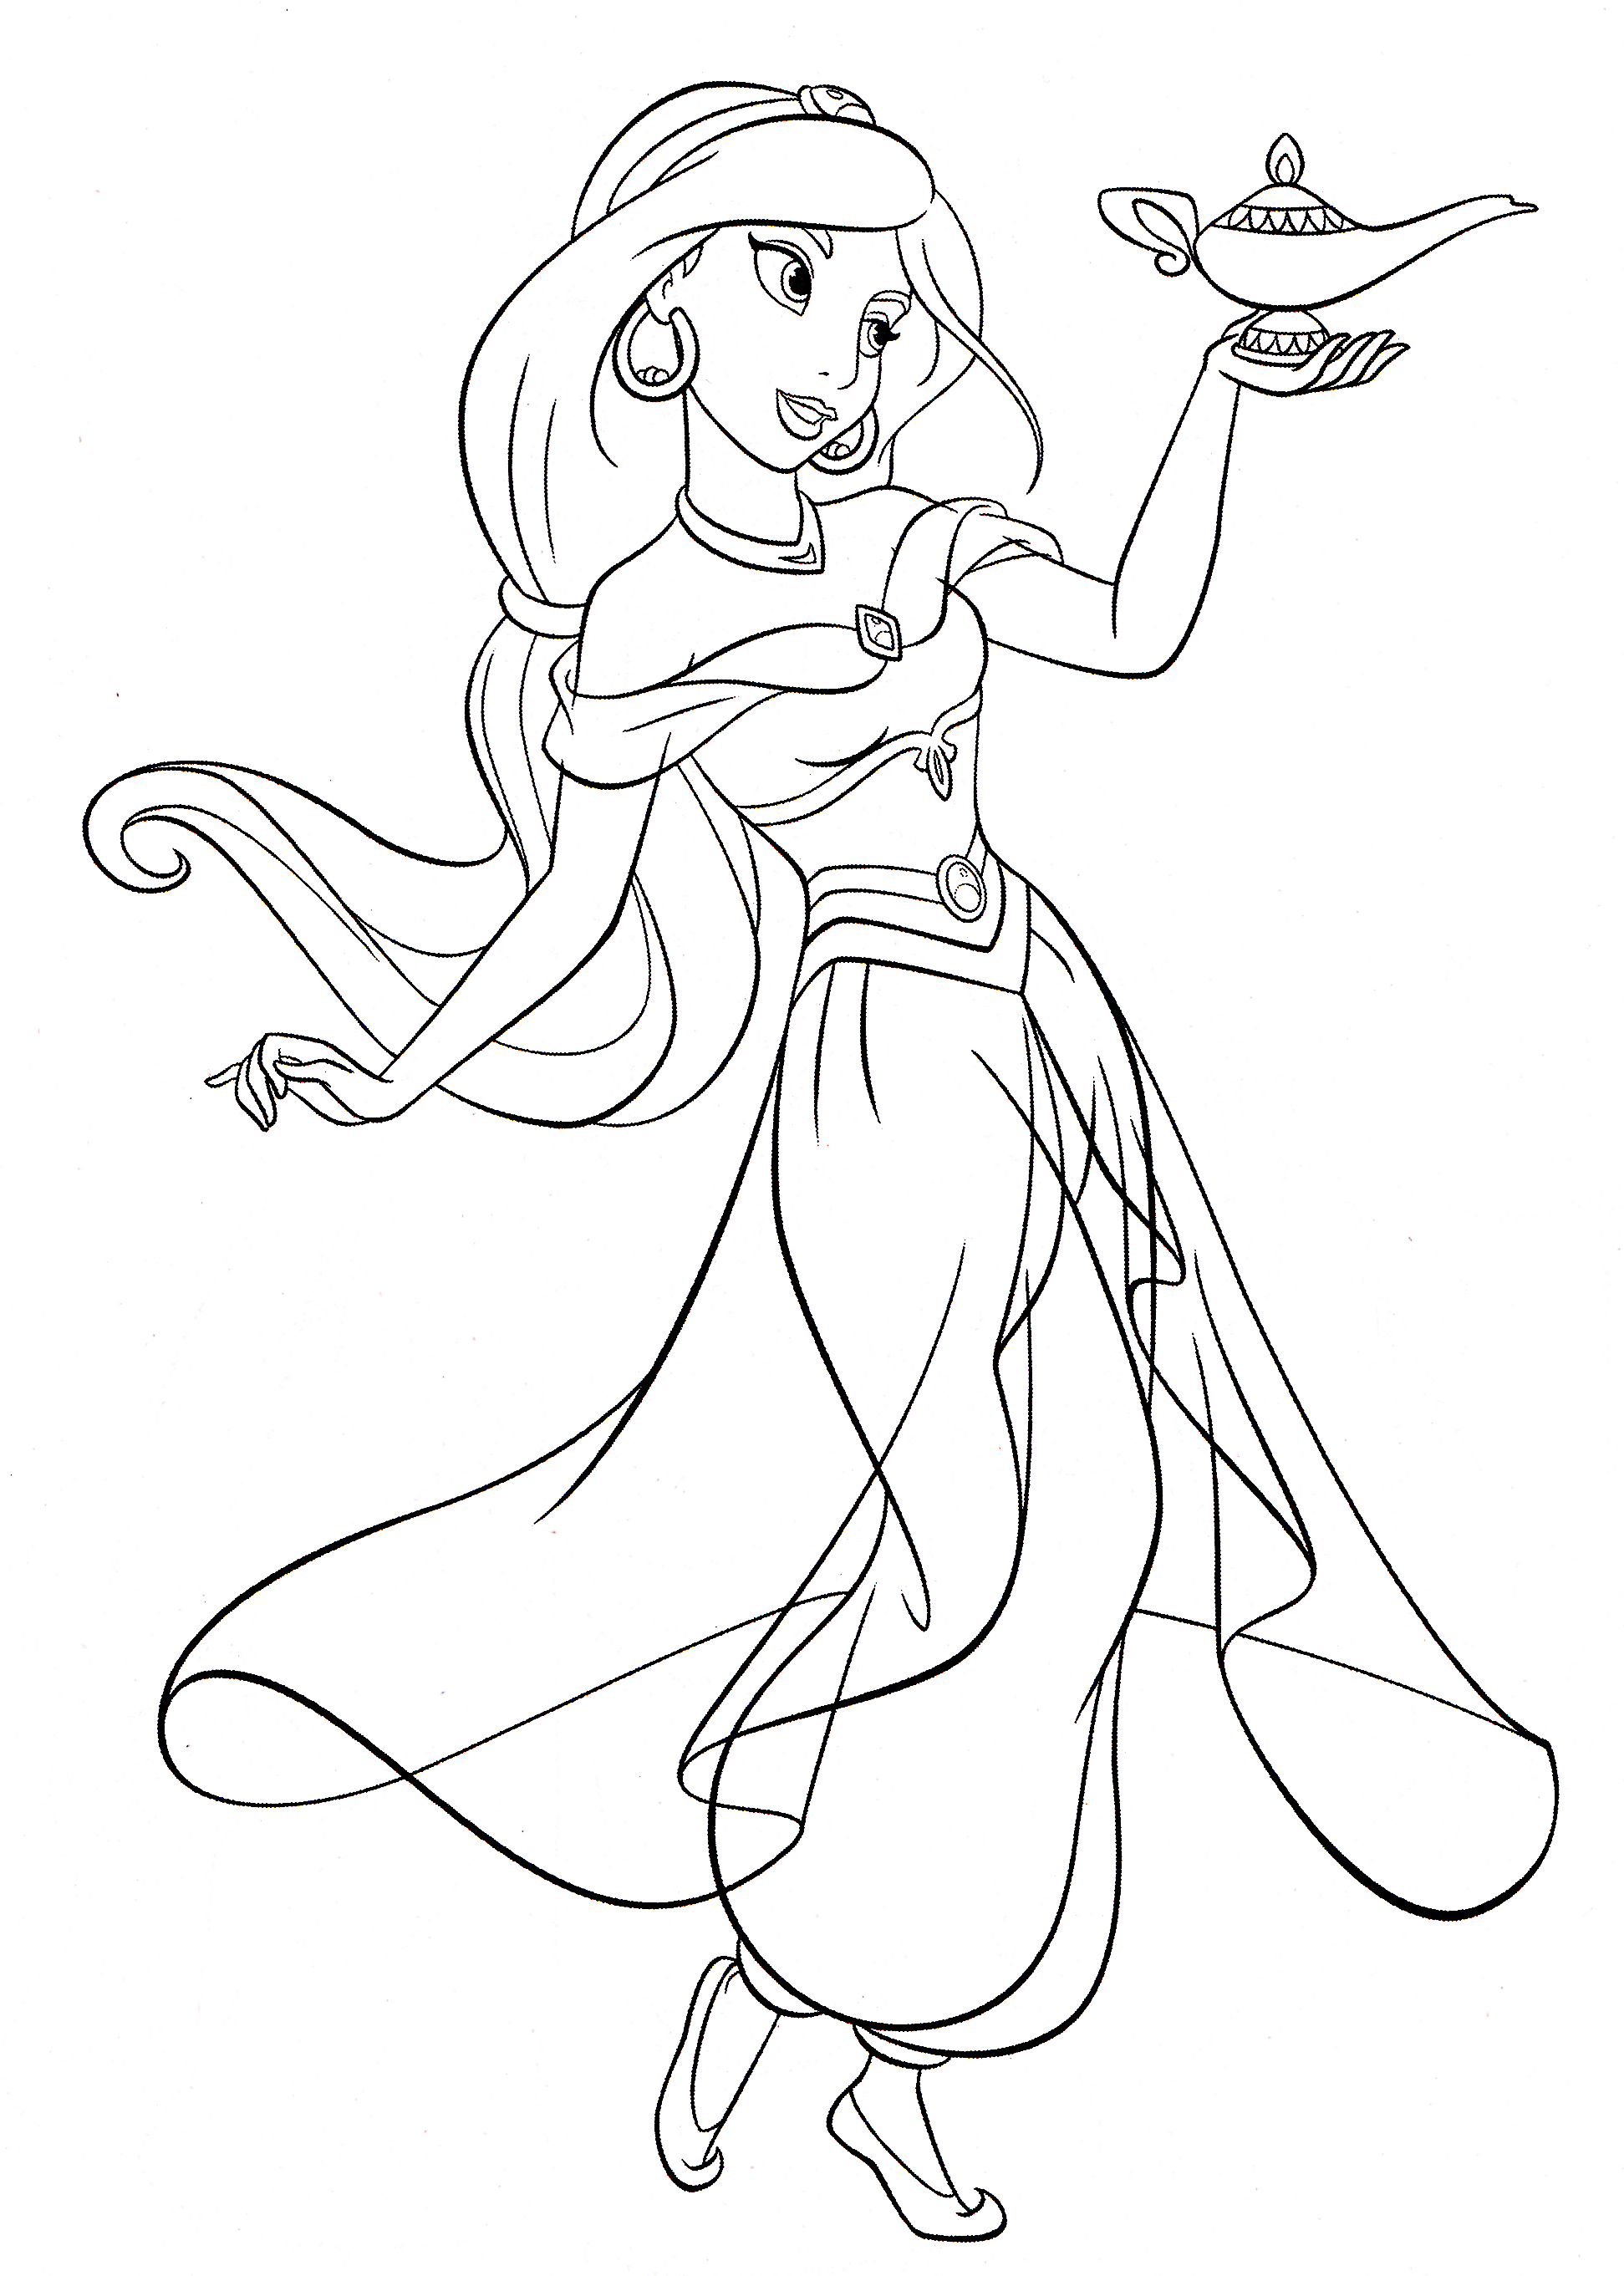 Princess jasmine colouring pages to print - Jasmine Coloring Pages To Print Archives Free Coloring Pages For